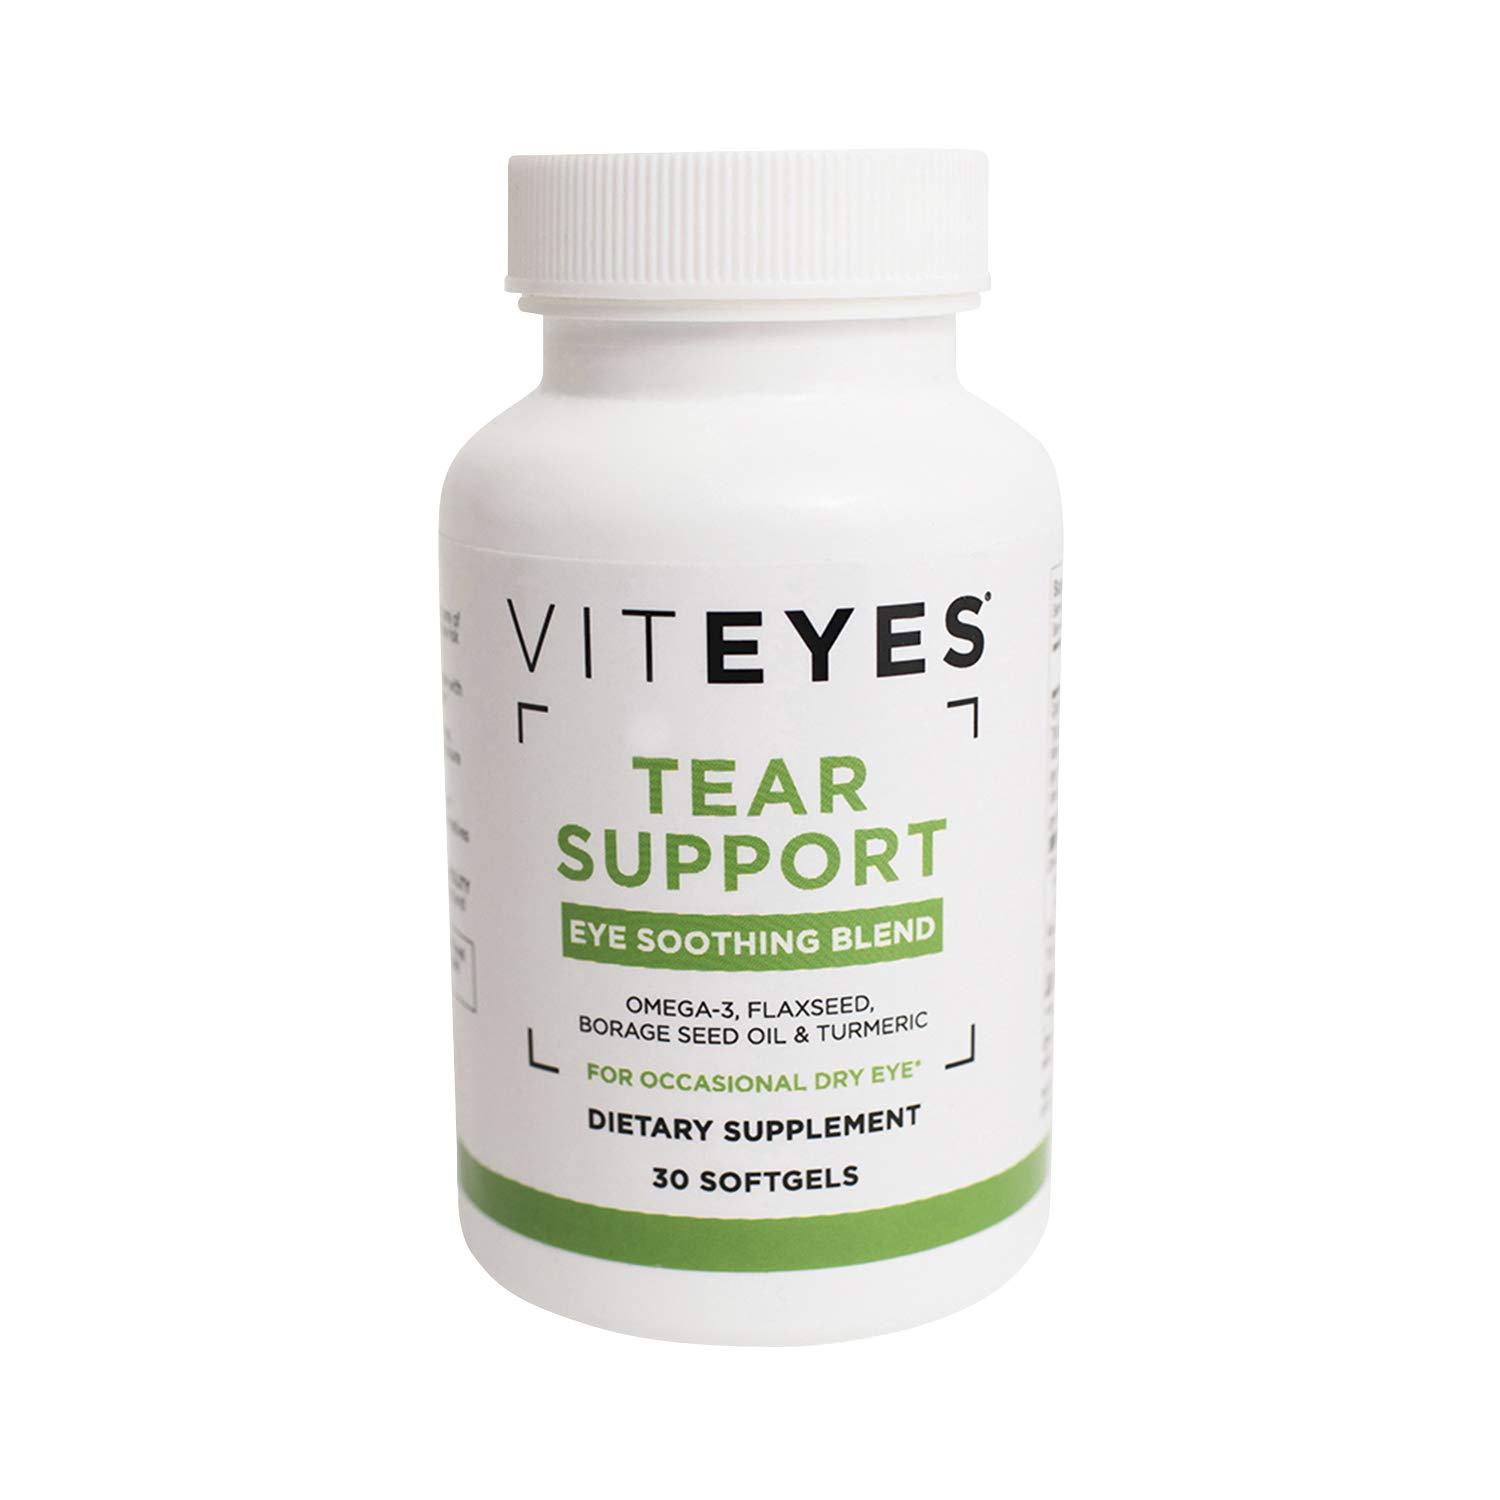 Viteyes Tear Support Eye Soothing Blend, Dietary Supplement for Occasional Dry Eye, 30 Softgels